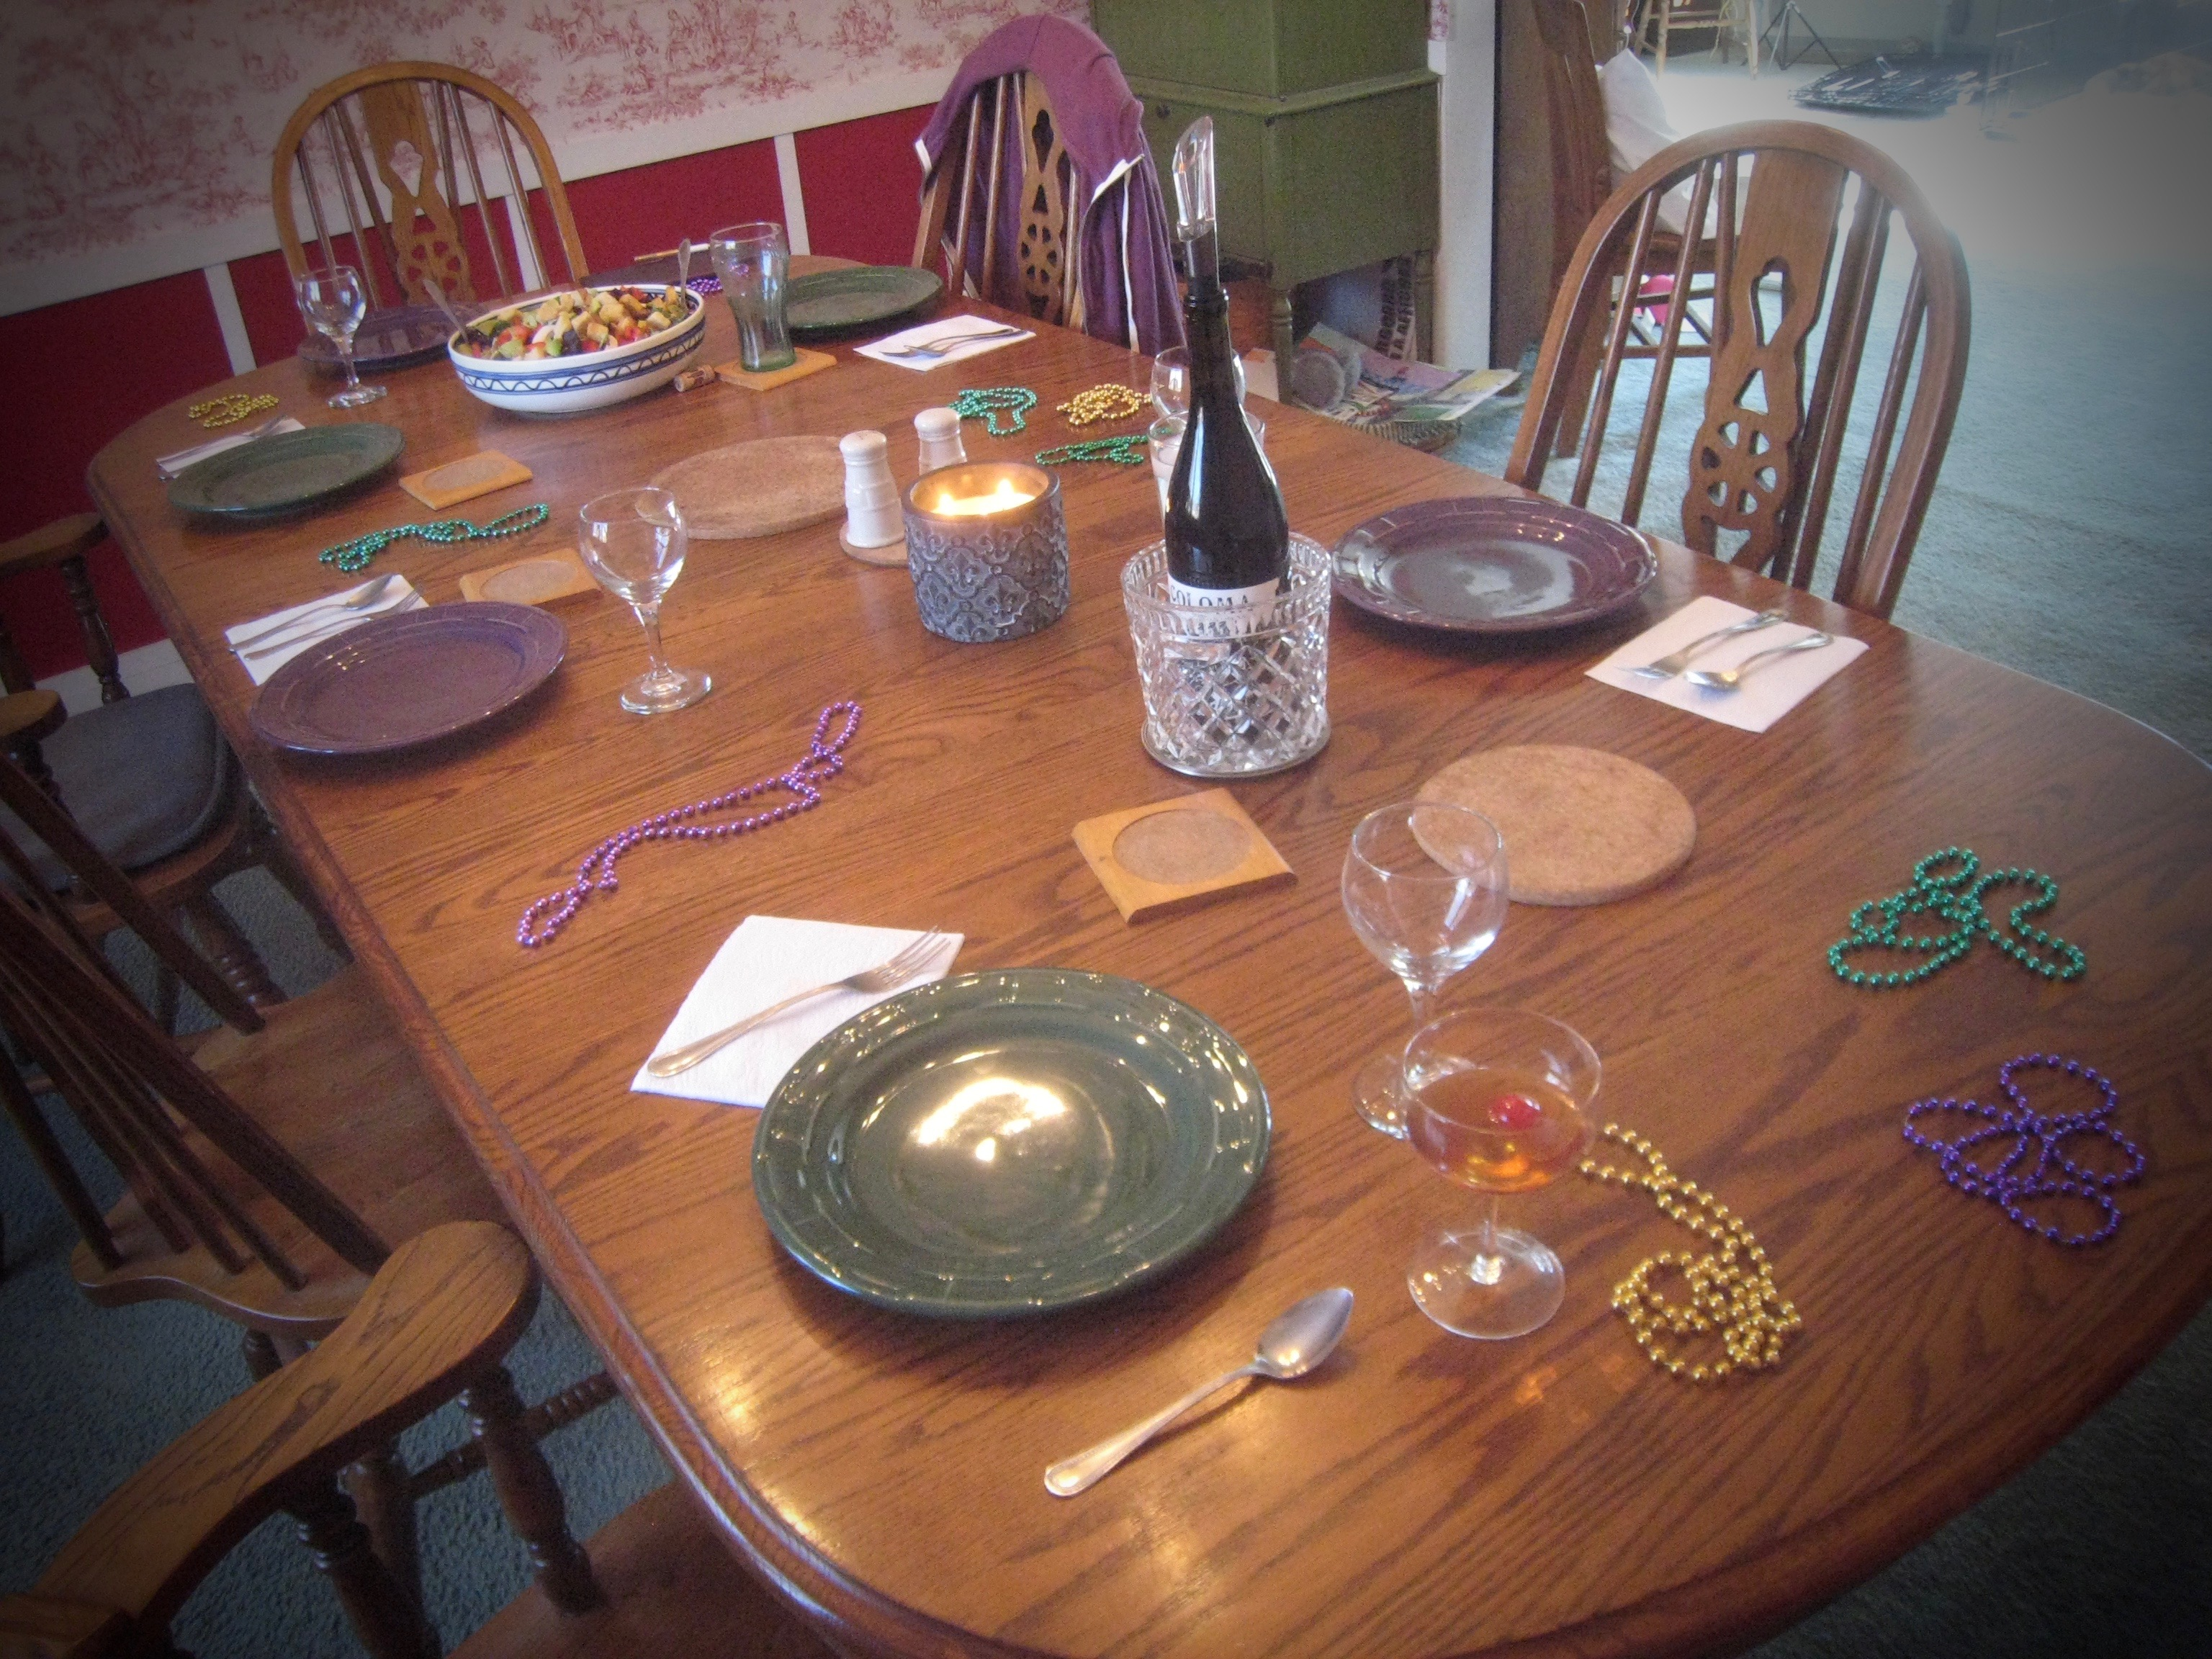 Table Set for Mardi Gras